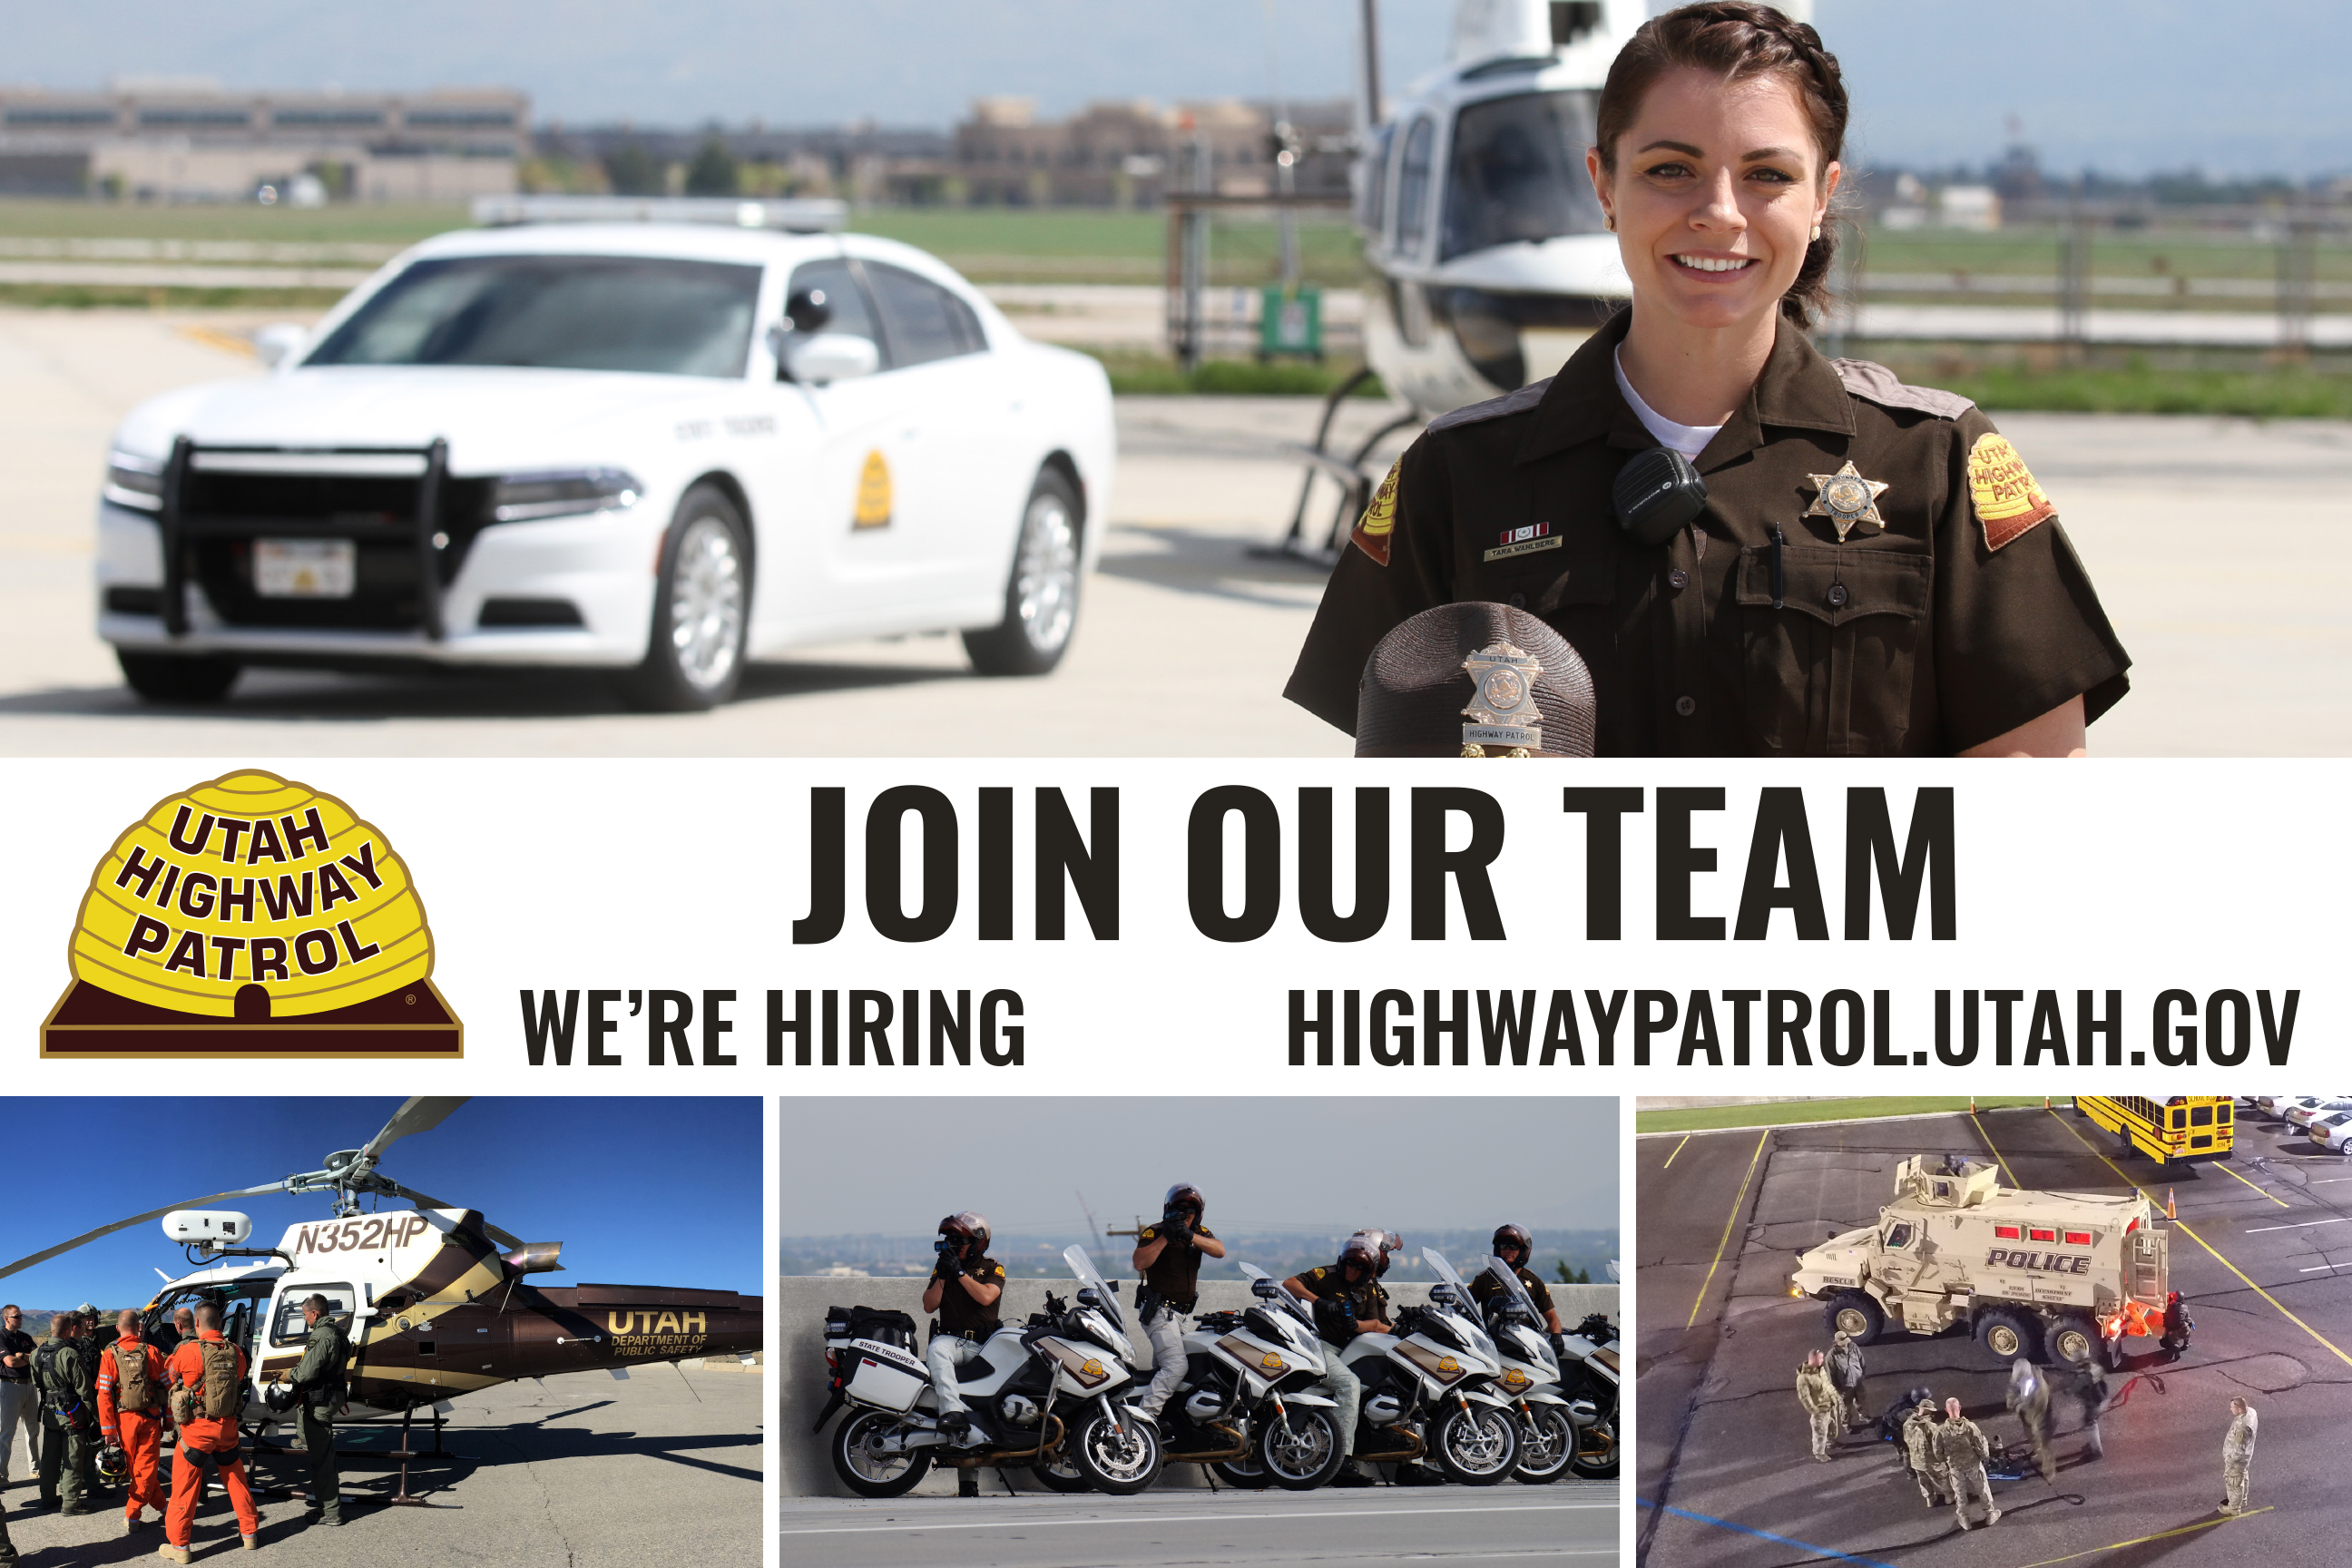 Join our team - the Utah Highway Patrol is hiring.